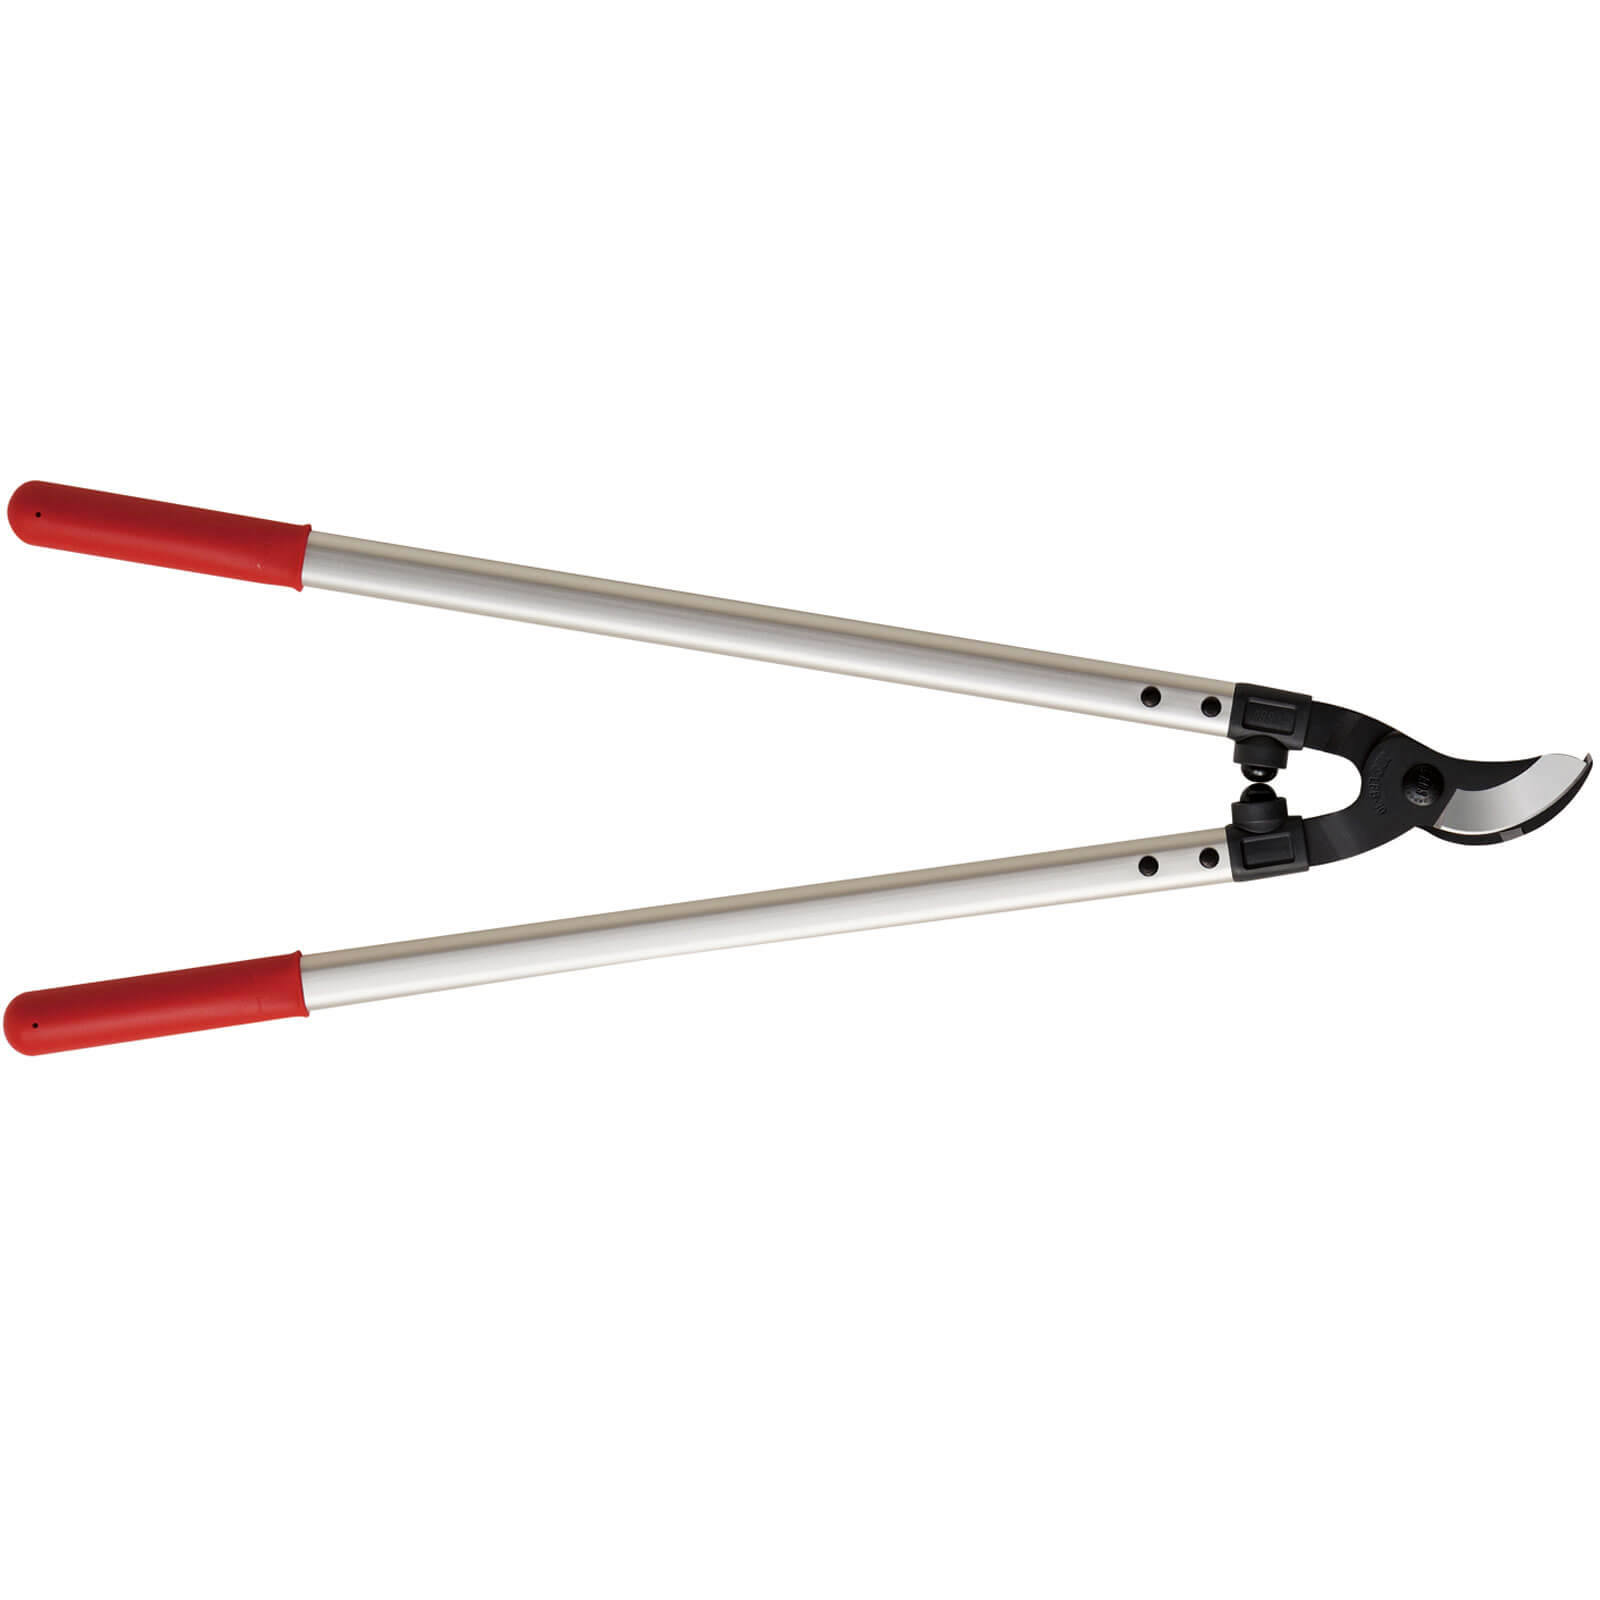 ARS LPB-30L Professional Bypass Loppers 38mm Max Cut 778mm Long